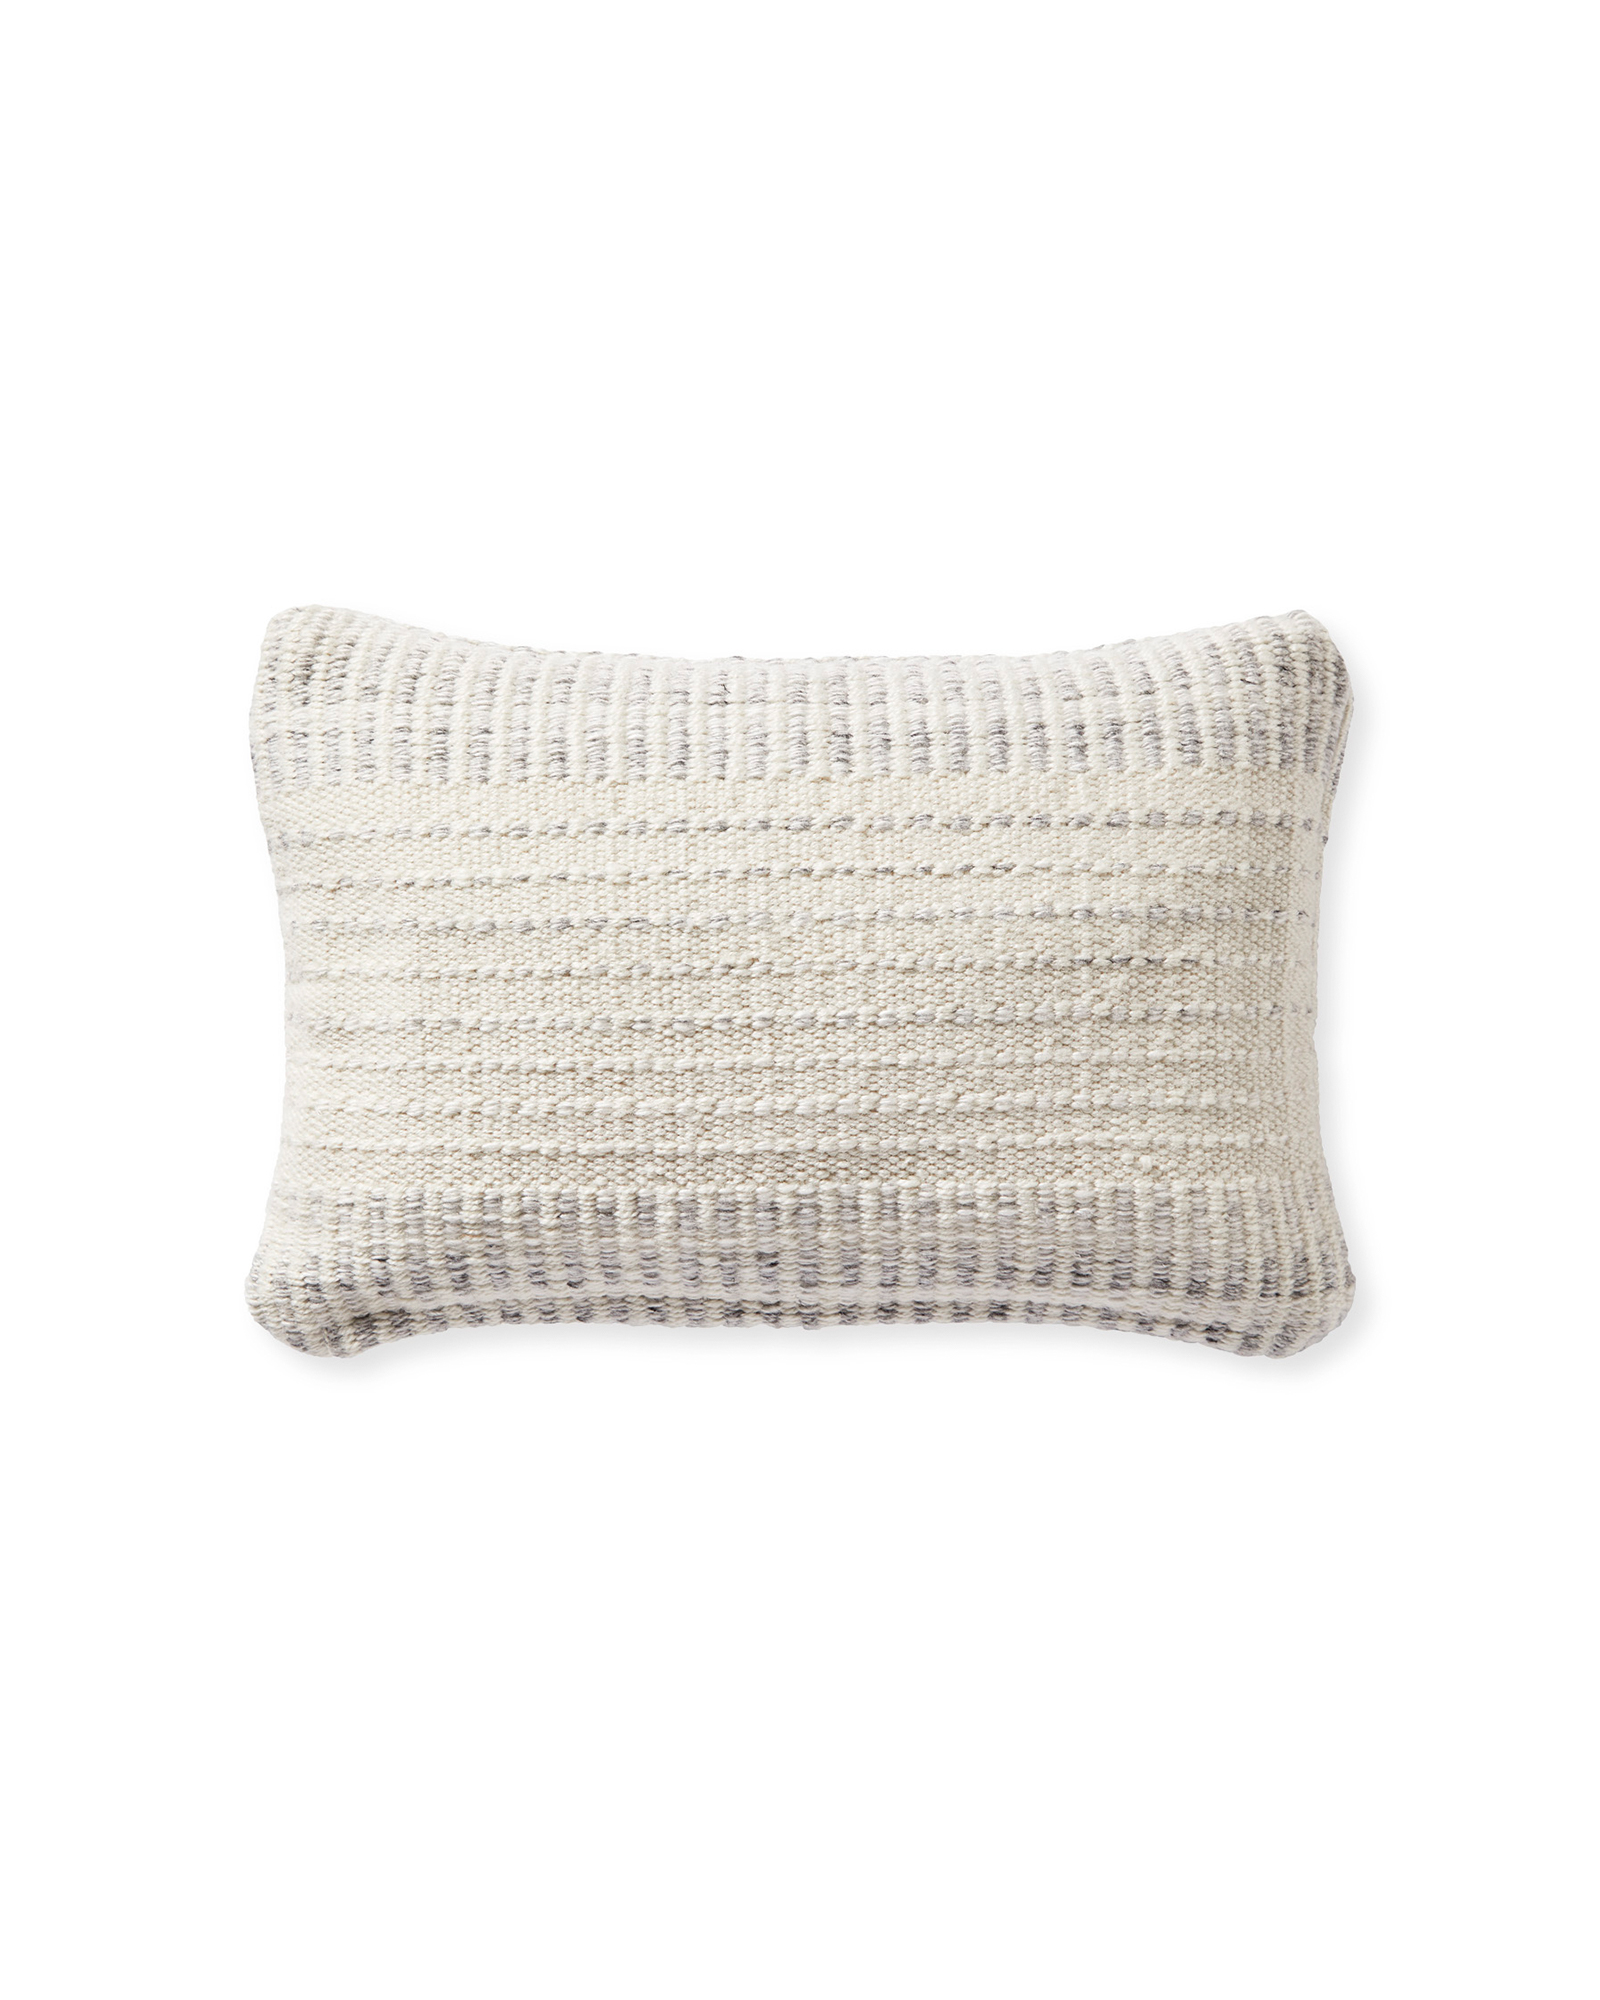 Alba Pillow Cover, Heathered Grey